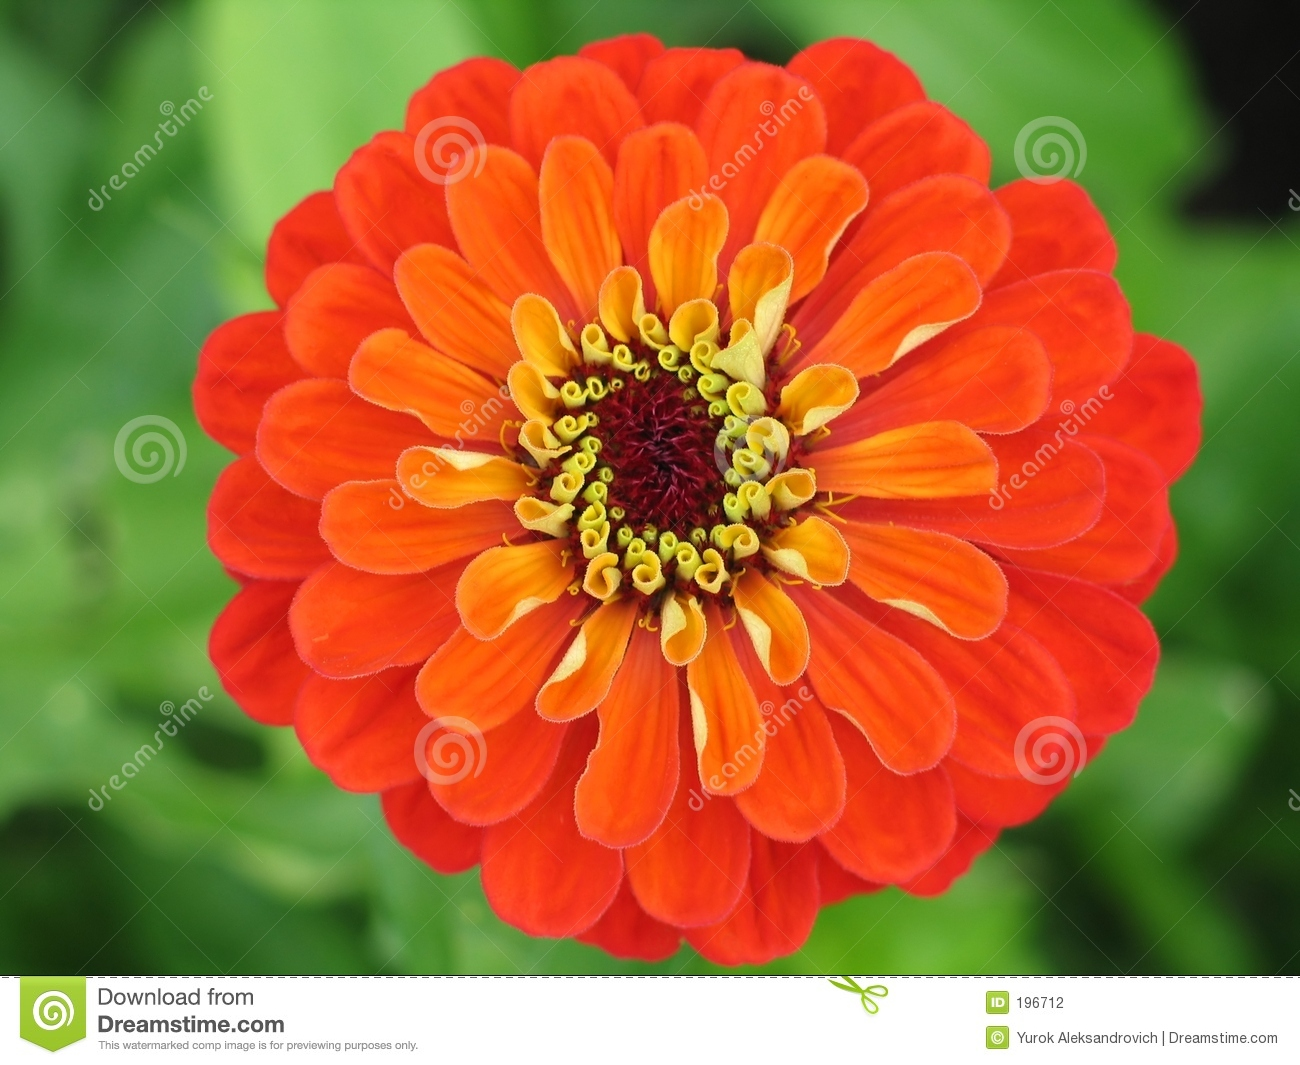 Zinnia Flower Stock Photography - Image: 196712